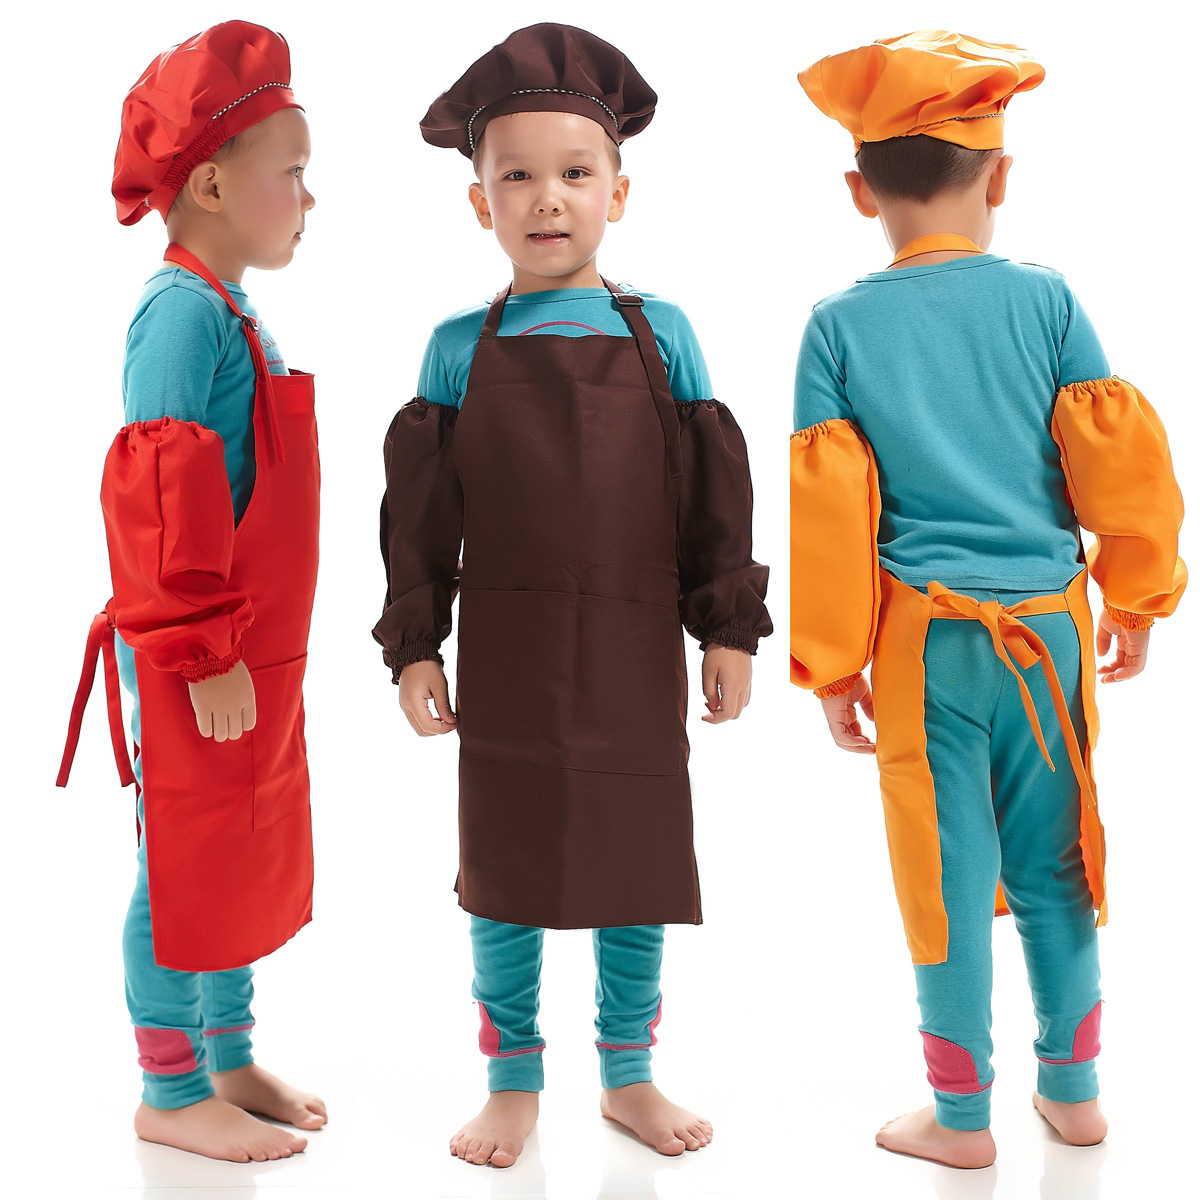 Children Multicolor Cooking Clothing Chef Uniform for Kids Kitchen Cosplay Halloween Party Costume Boys Girls Apron Hat Cuff in Girls Costumes from Novelty Special Use